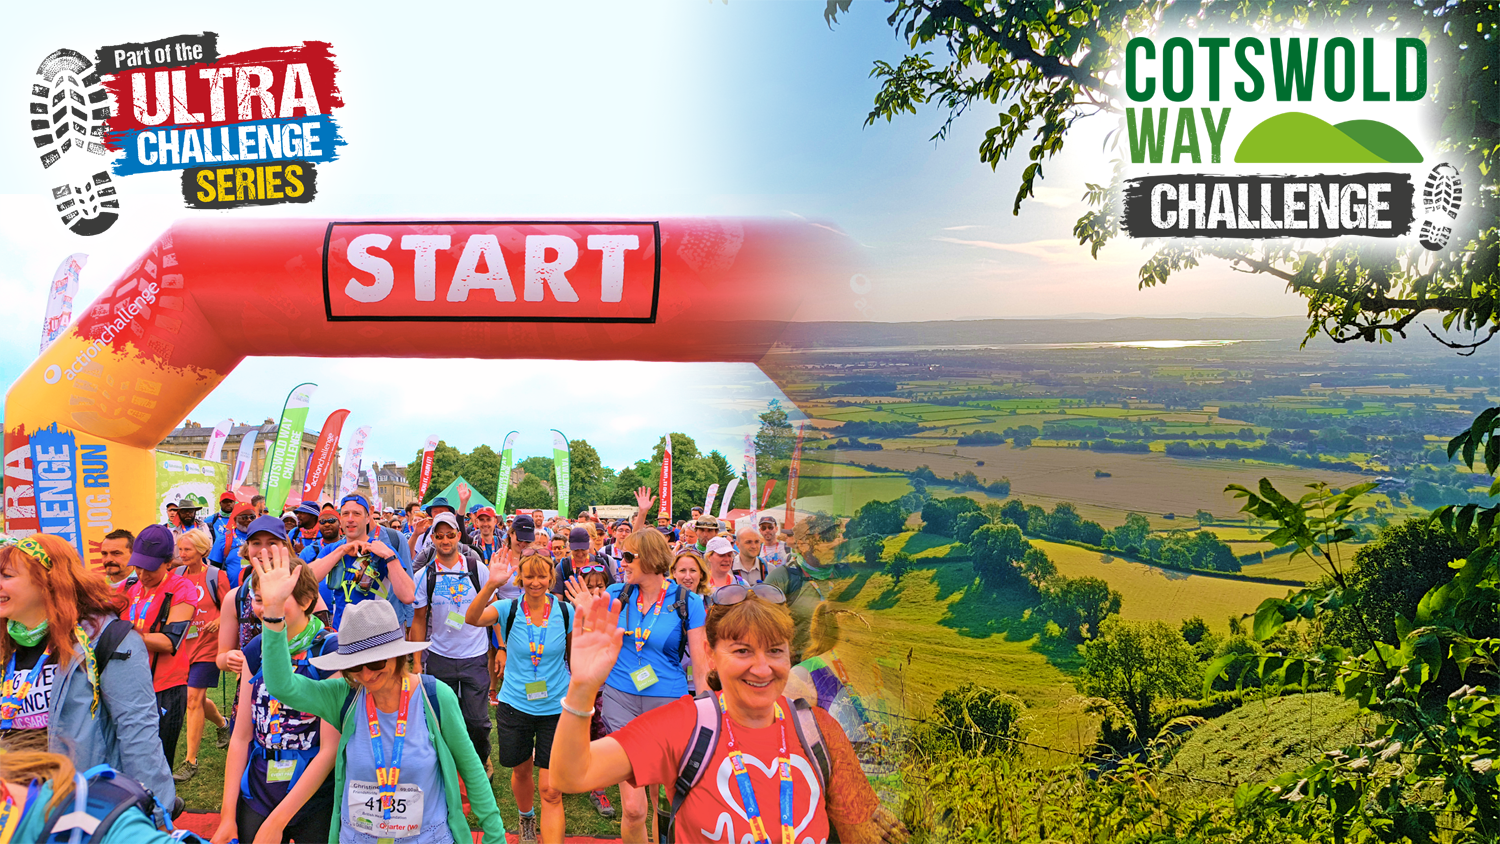 Cotswold Way Challenge 2019